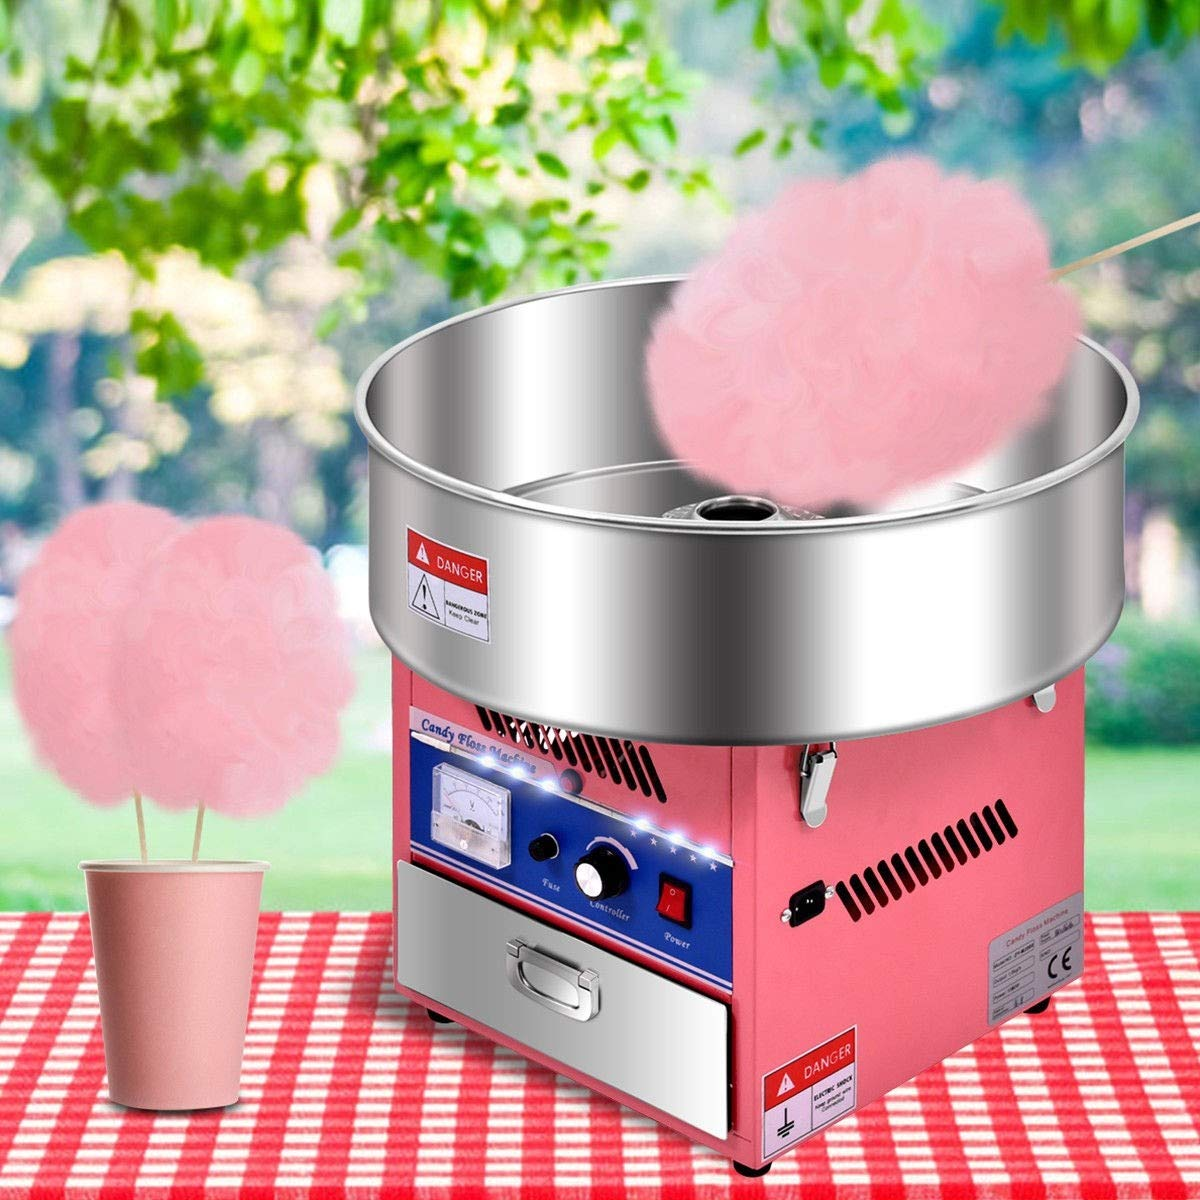 Cotton Candy Machine, Pink Electric Cotton Candy Machine by MD Group (Image #3)